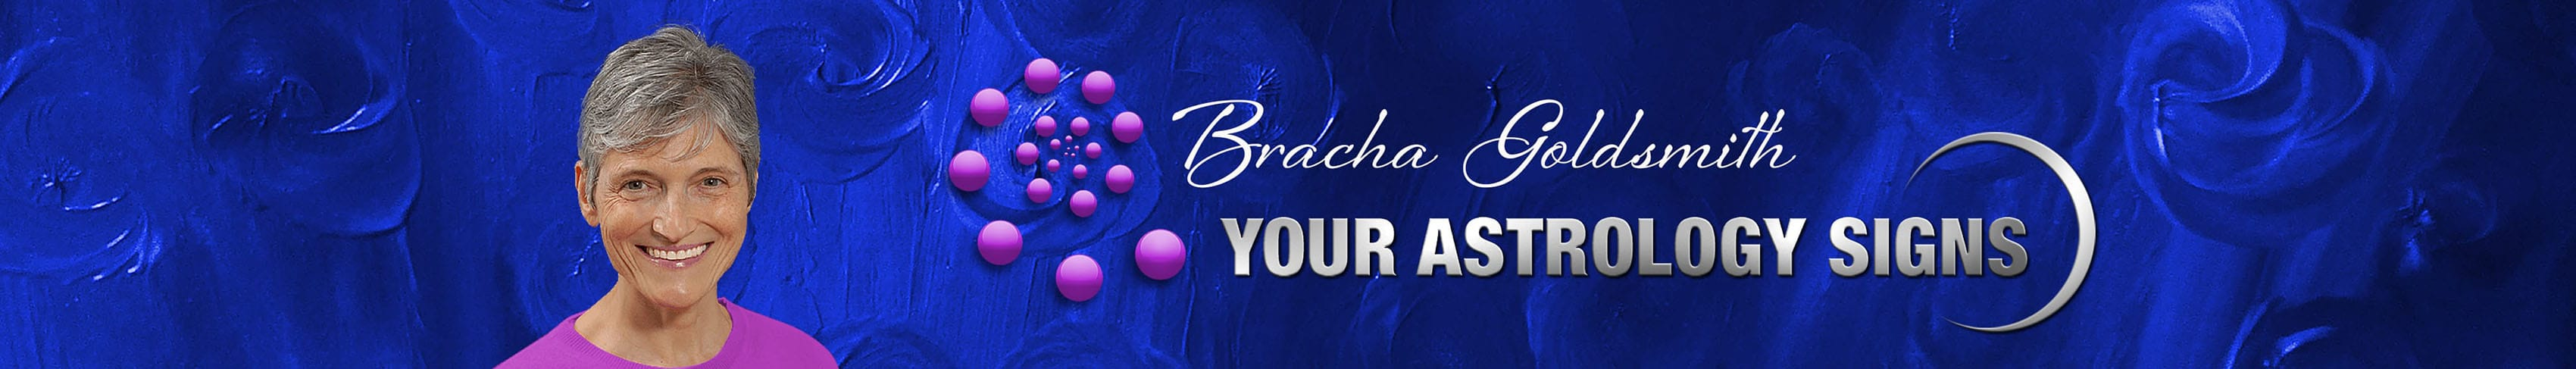 Bracha Goldsmith Your Astrology Signs